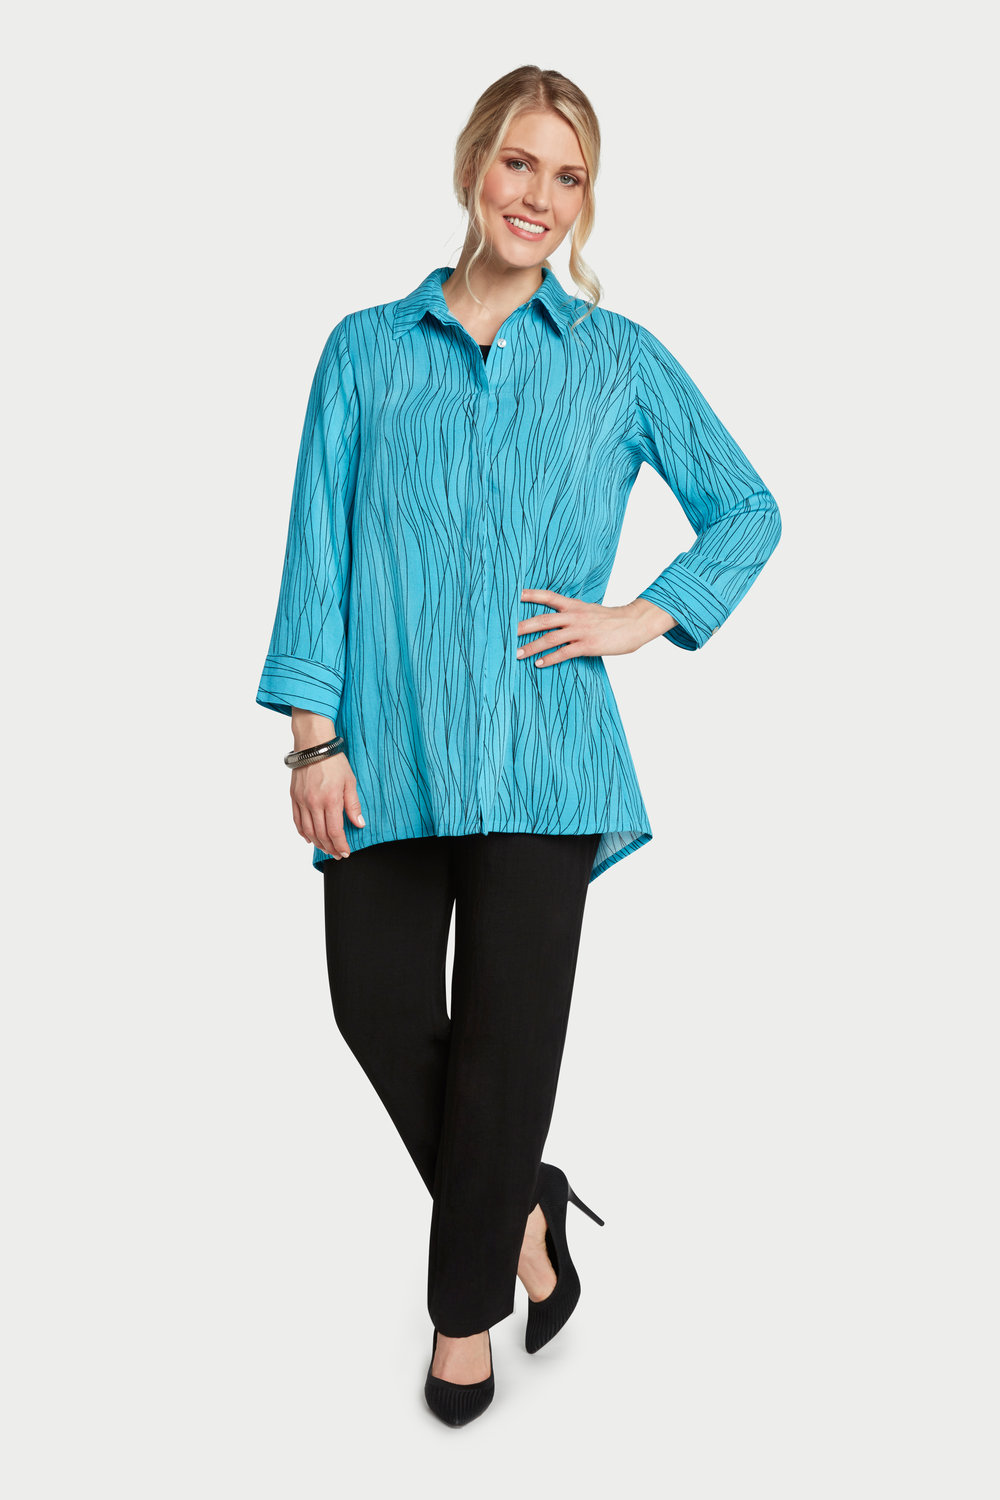 AA228 - Anna Marie Blouse    Caribbean Waves - CL2567W